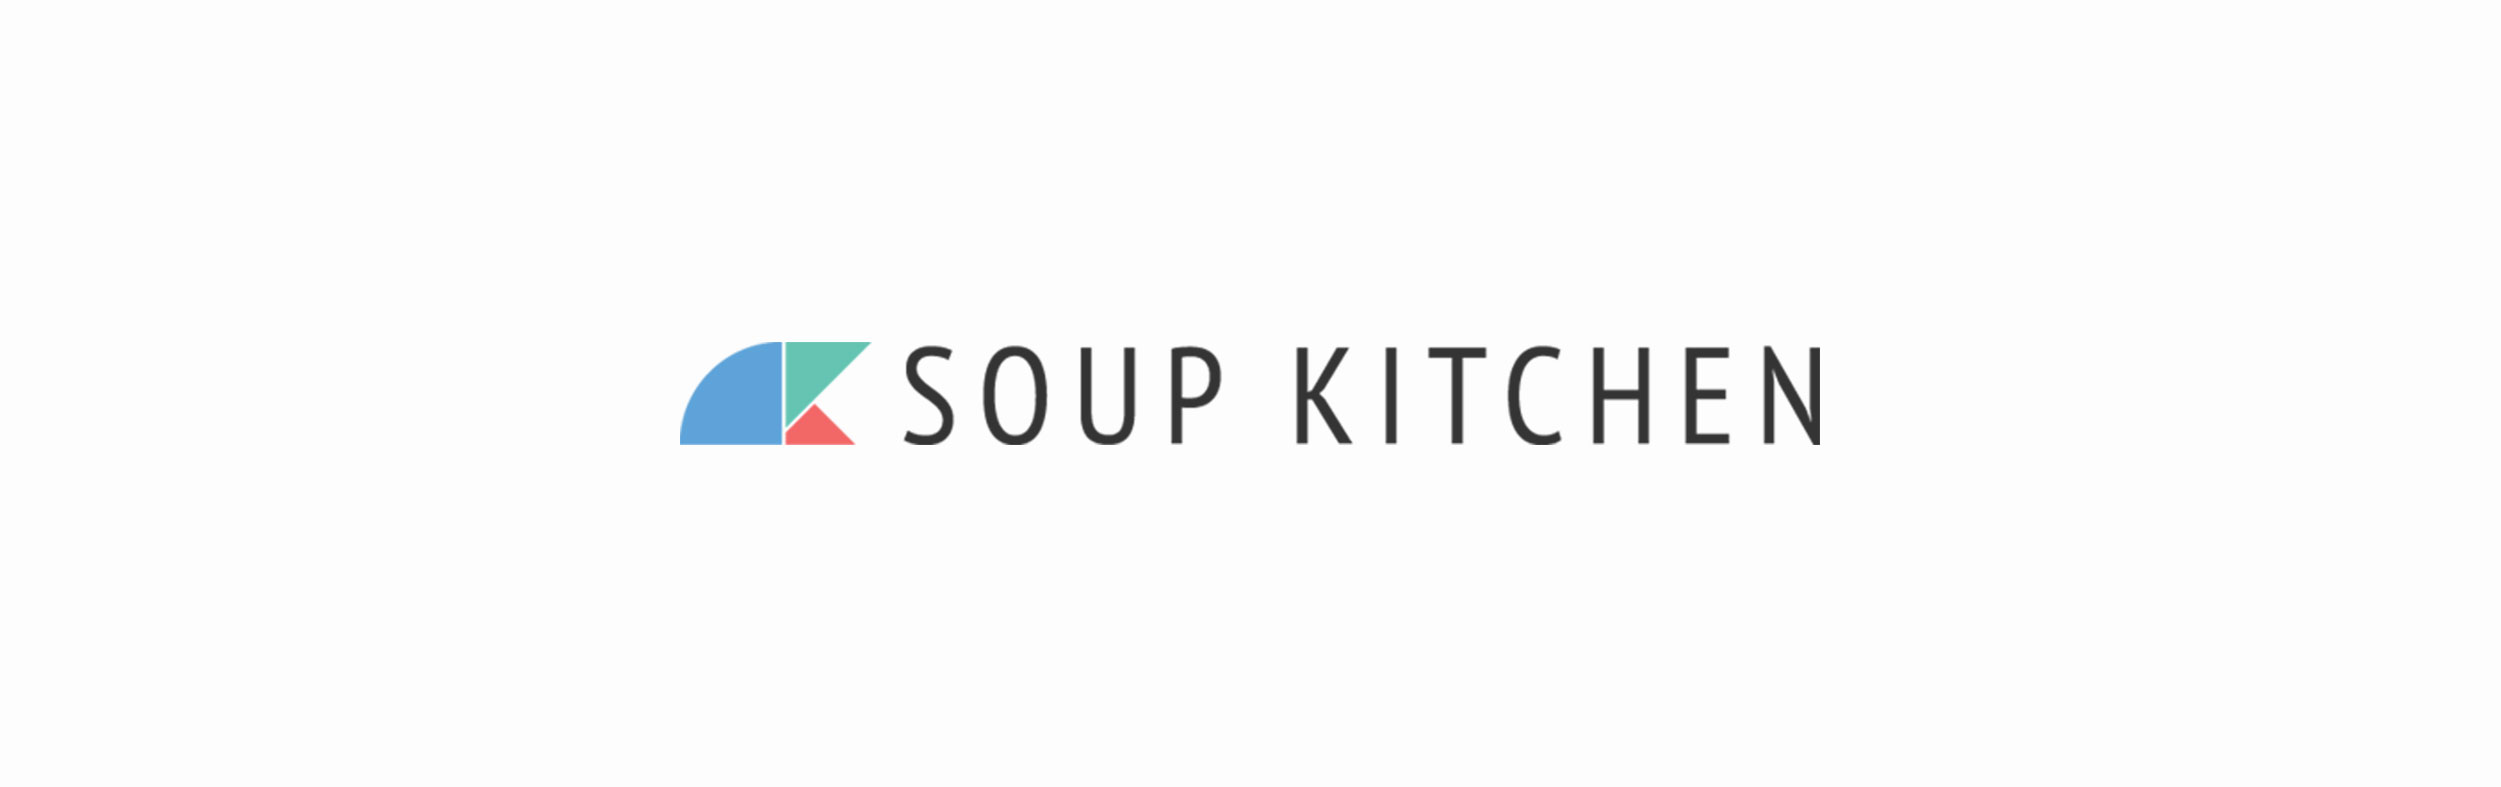 Soup kitchen manchester logo